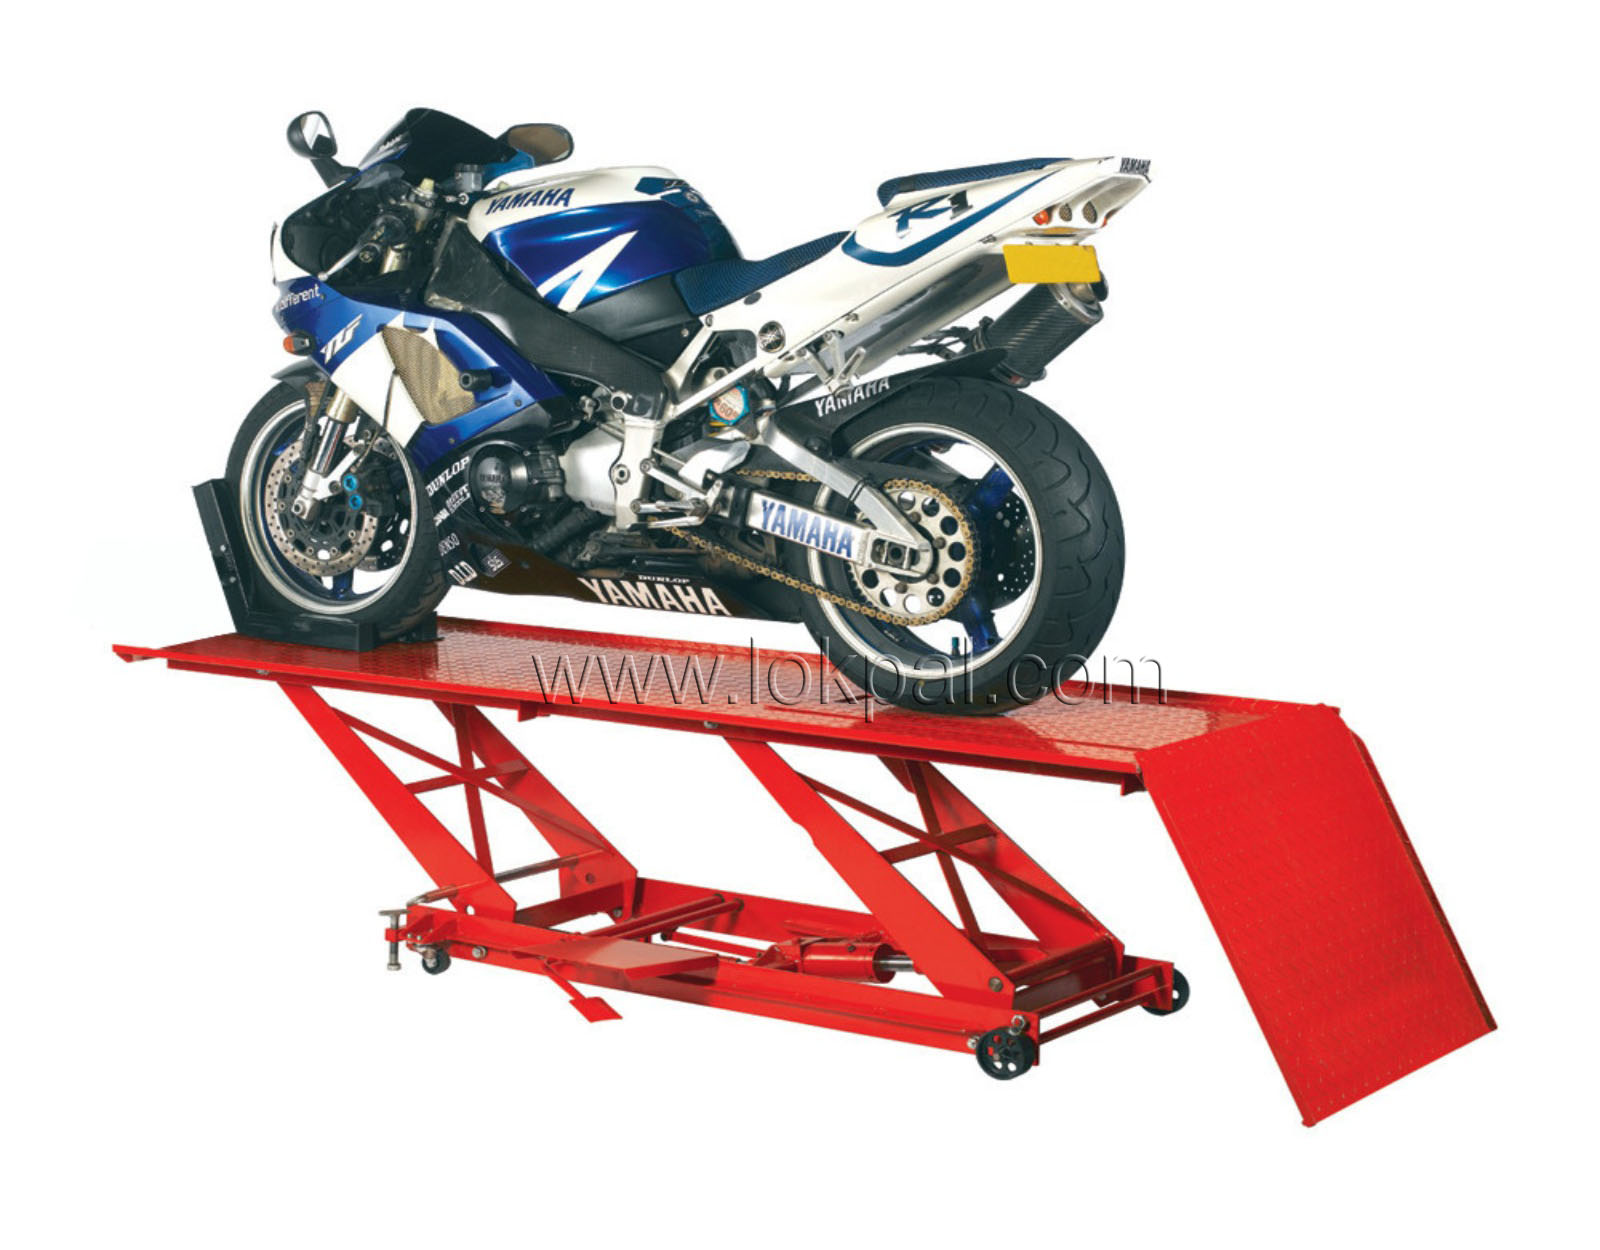 Motor Cycle Liftable, Garage Equipment